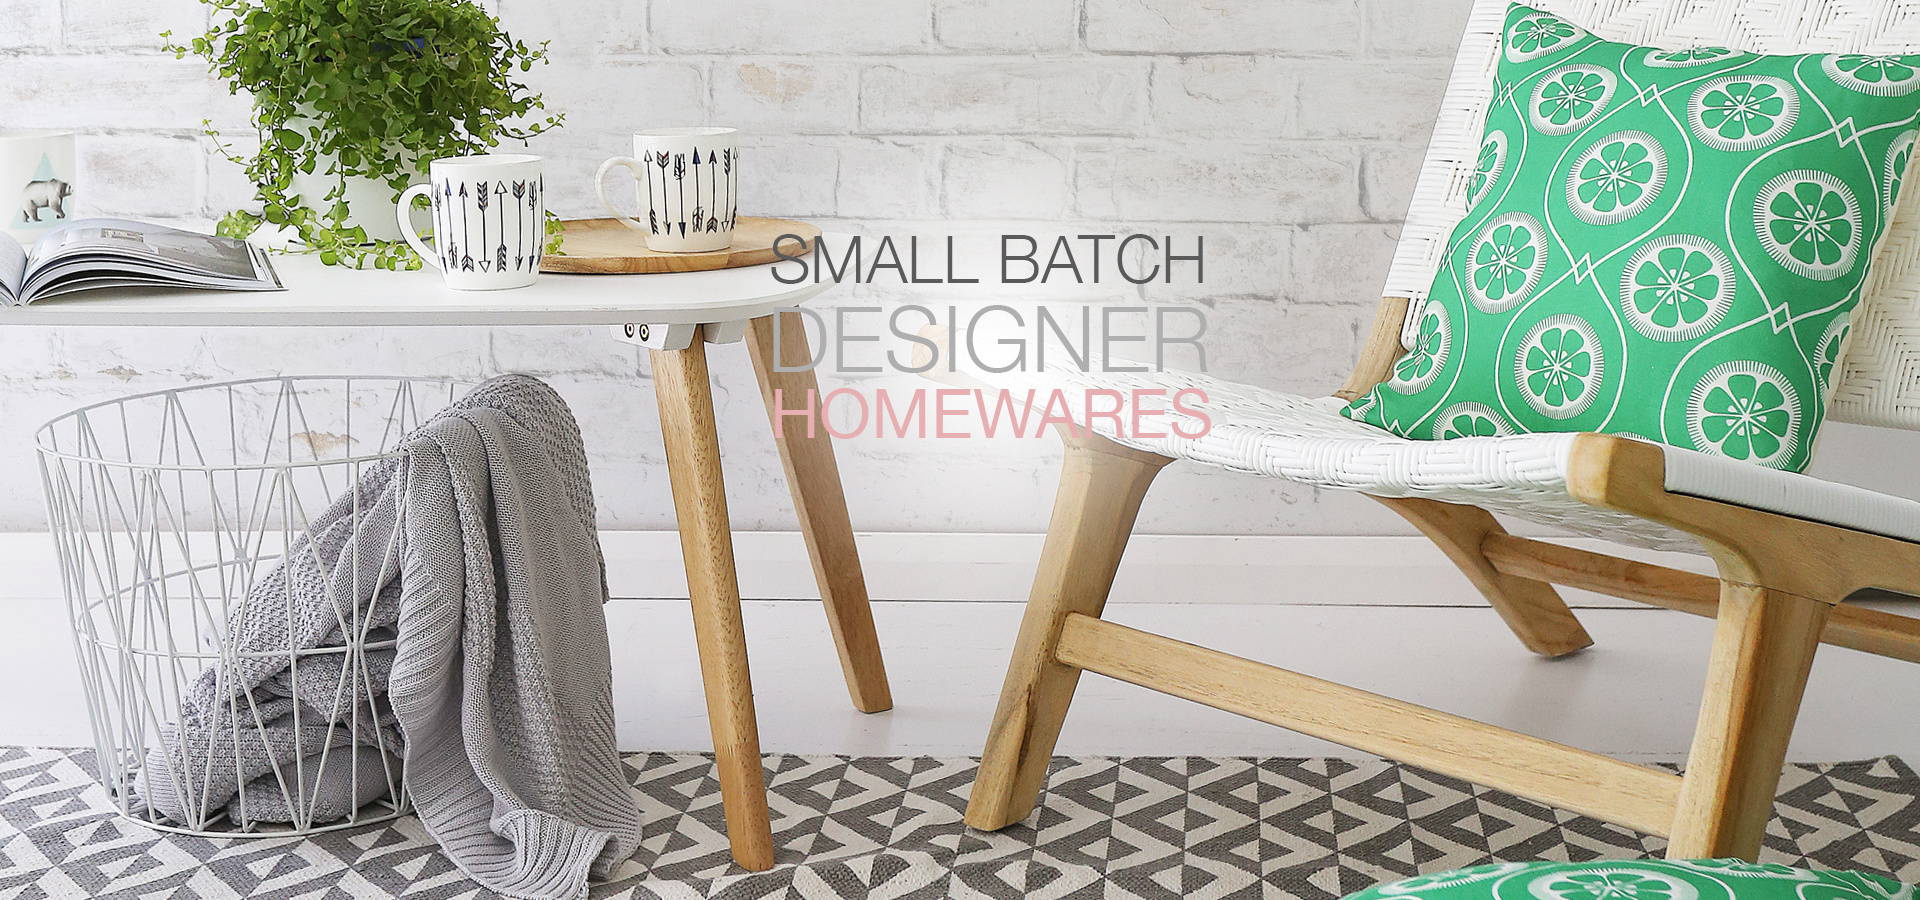 Small-Batch-Designer-Homewares-Millie-Archer